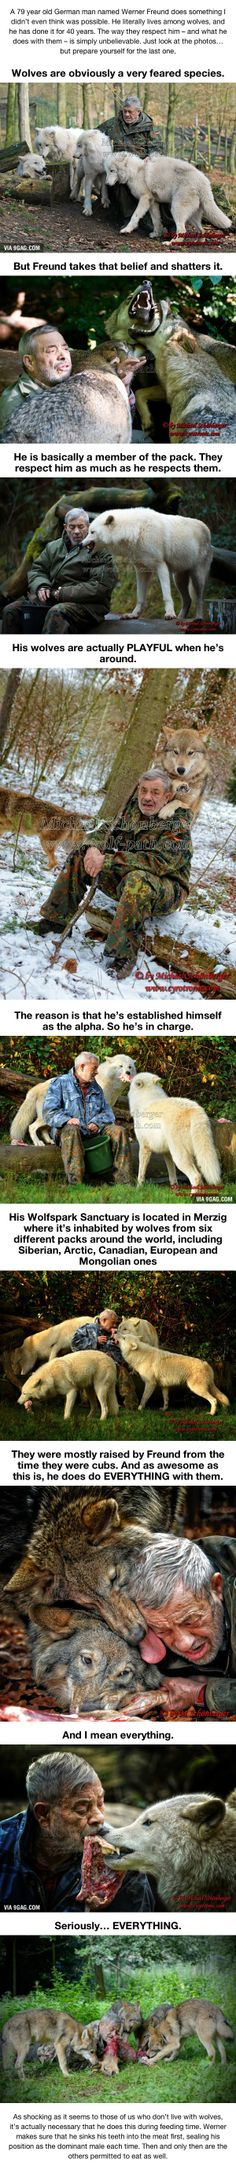 I Thought This Guy Living With Wolves Was Super Cool. Then I Saw The Last Photo…WHAT.